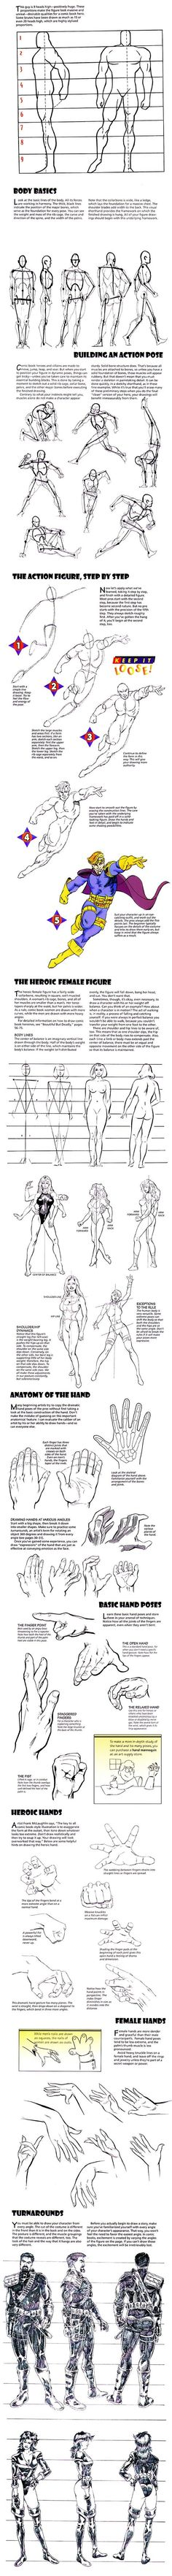 How to Draw the Human Body - Tutorial: Dynamic Heroic Character Design for Comic / Manga Character Reference by ernestine